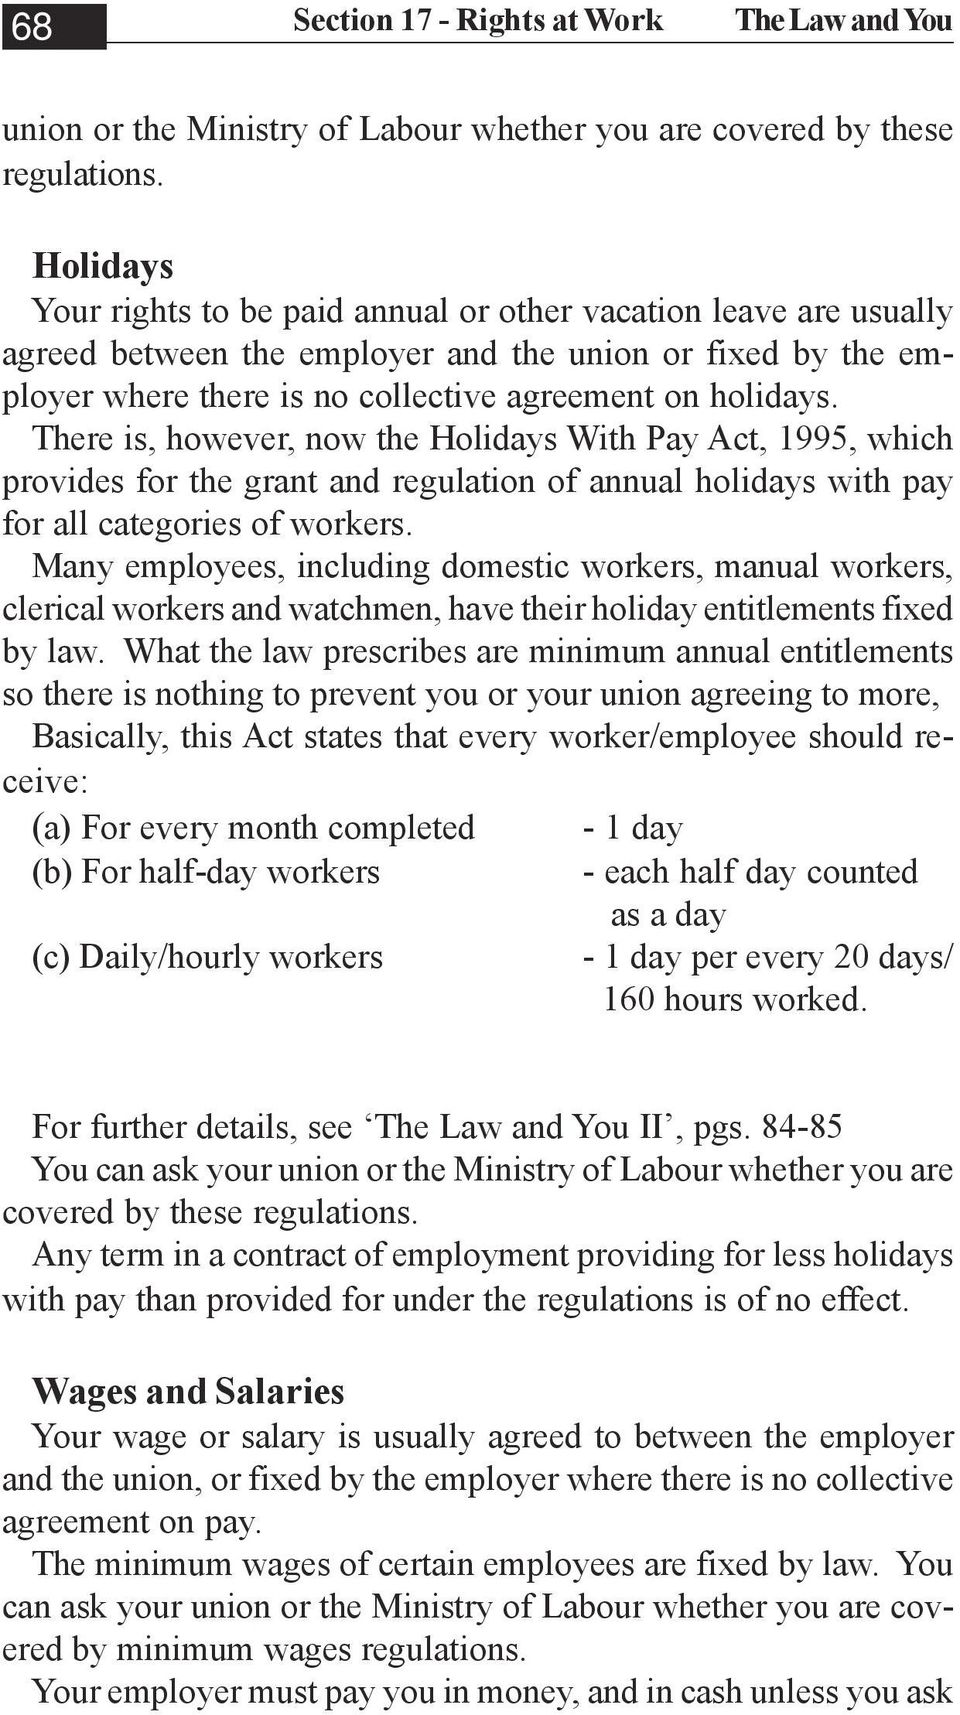 There is, however, now the Holidays With Pay Act, 1995, which provides for the grant and regulation of annual holidays with pay for all categories of workers.